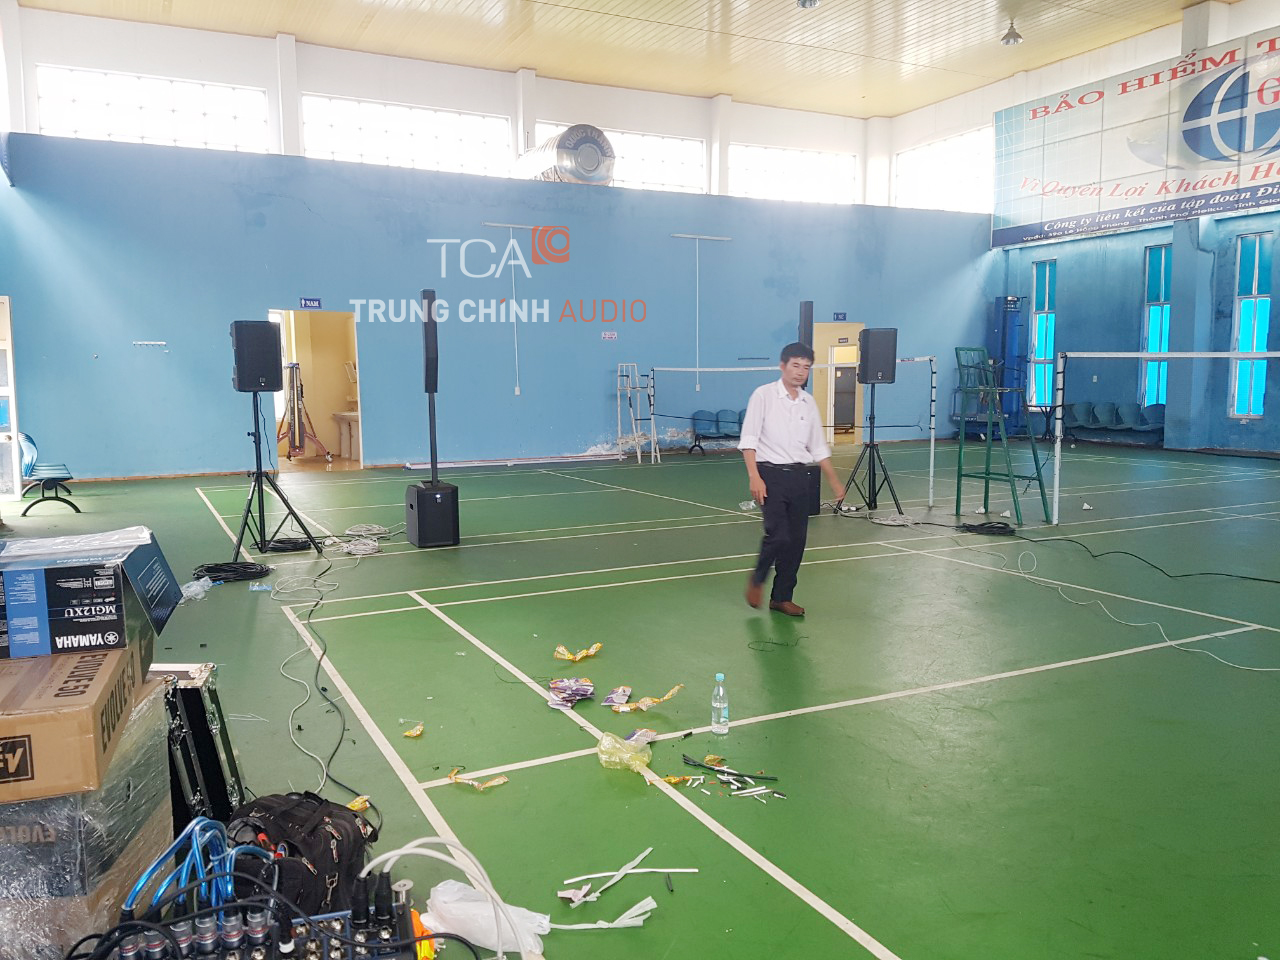 tca-lap-dat-am-thanh-he-thong-thuy-dien-ialy-011